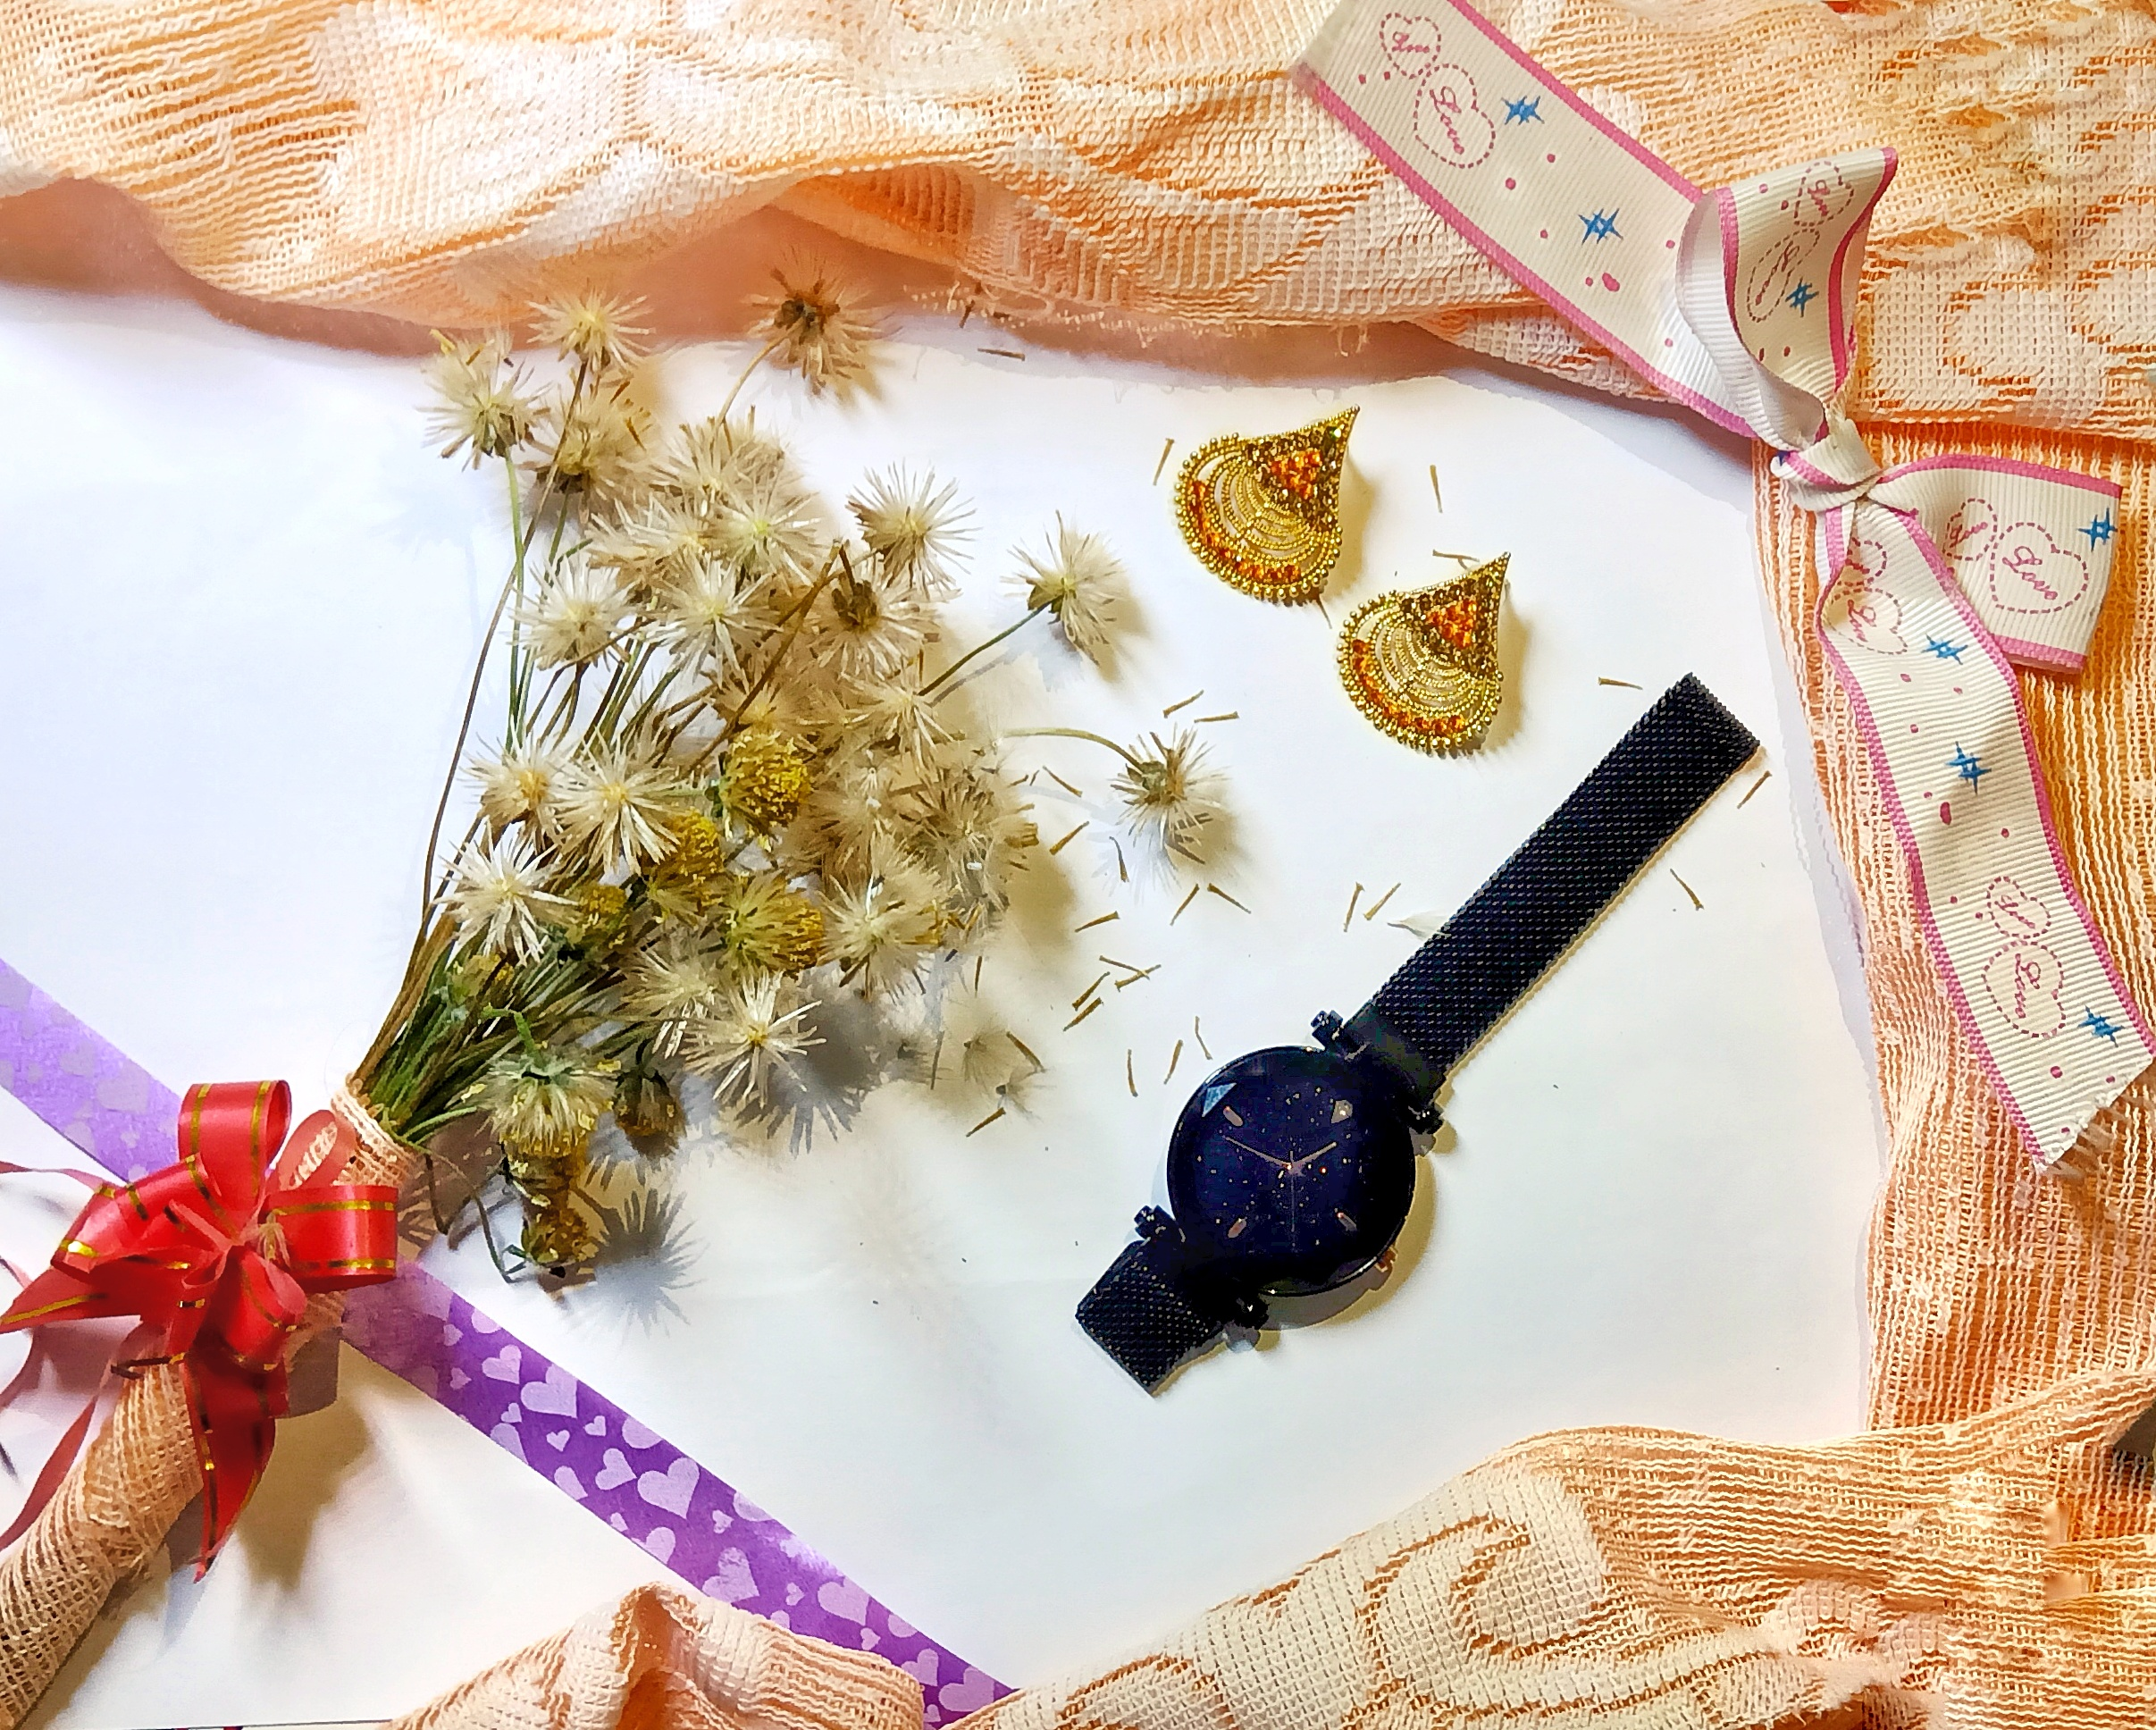 Flowers and a wrist watch